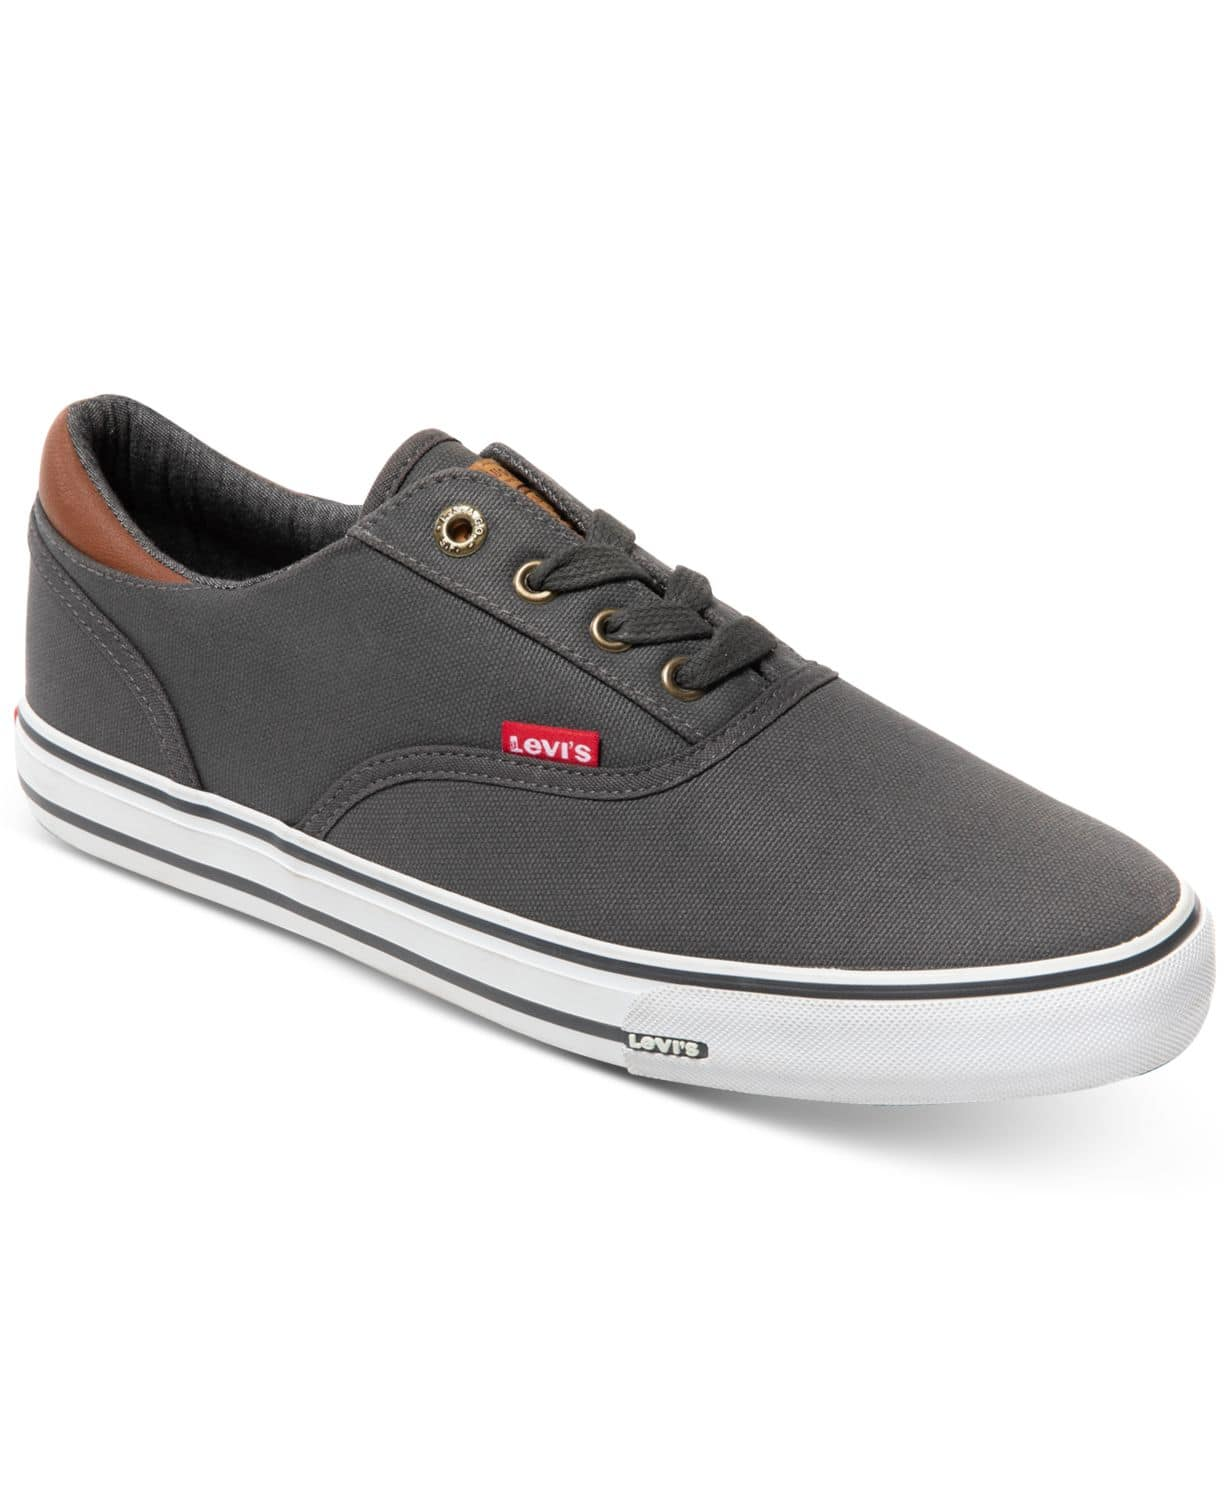 Levi's Men's Ethan Canvas II Sneakers $19.99 at Macy's (most colors up to size 11, but Red has sizes 12 & 13 too)